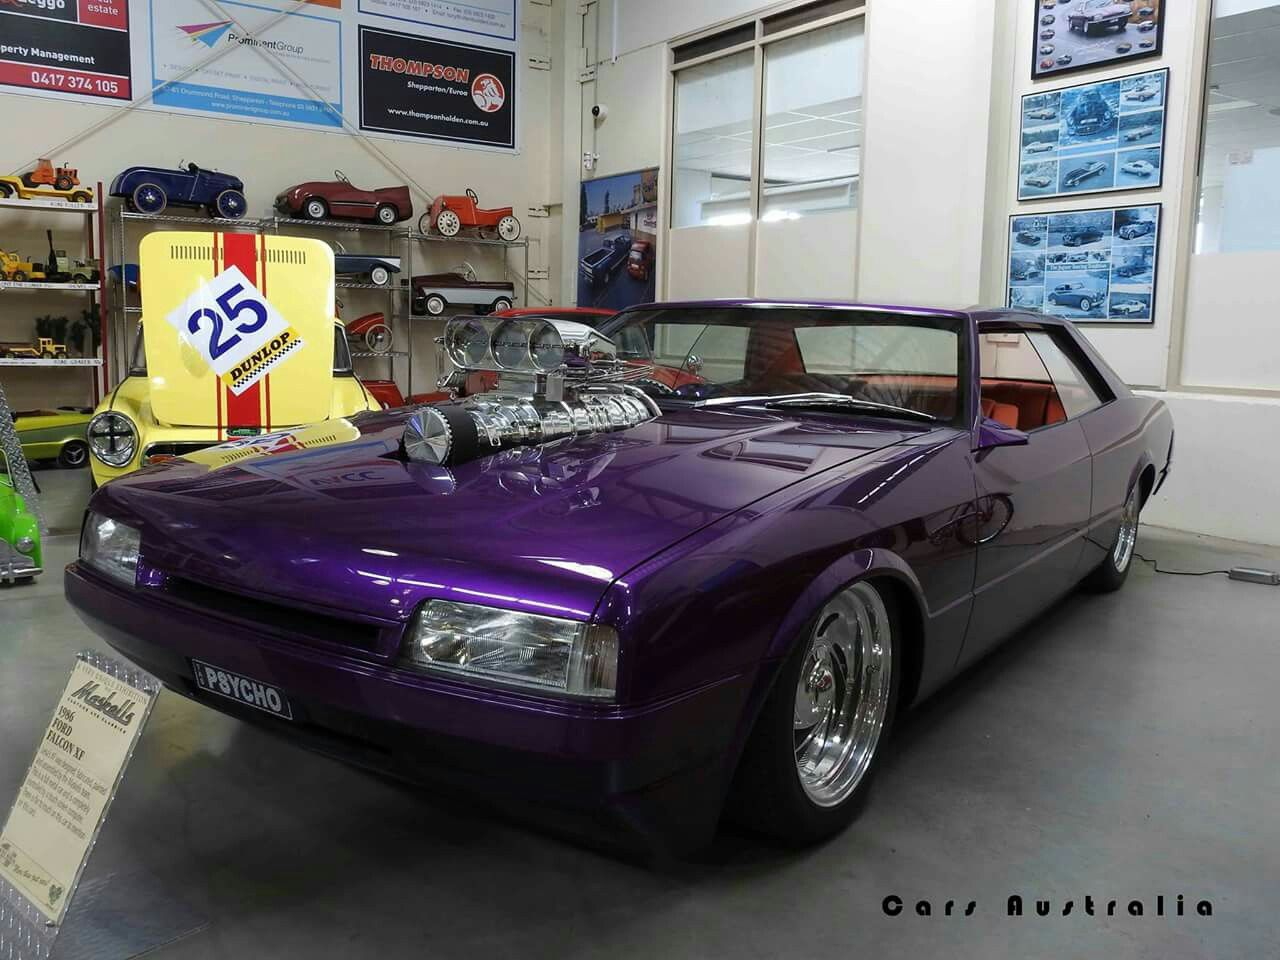 Psycho Xf Falcon Coupe With Images Ford Motor Aussie Muscle